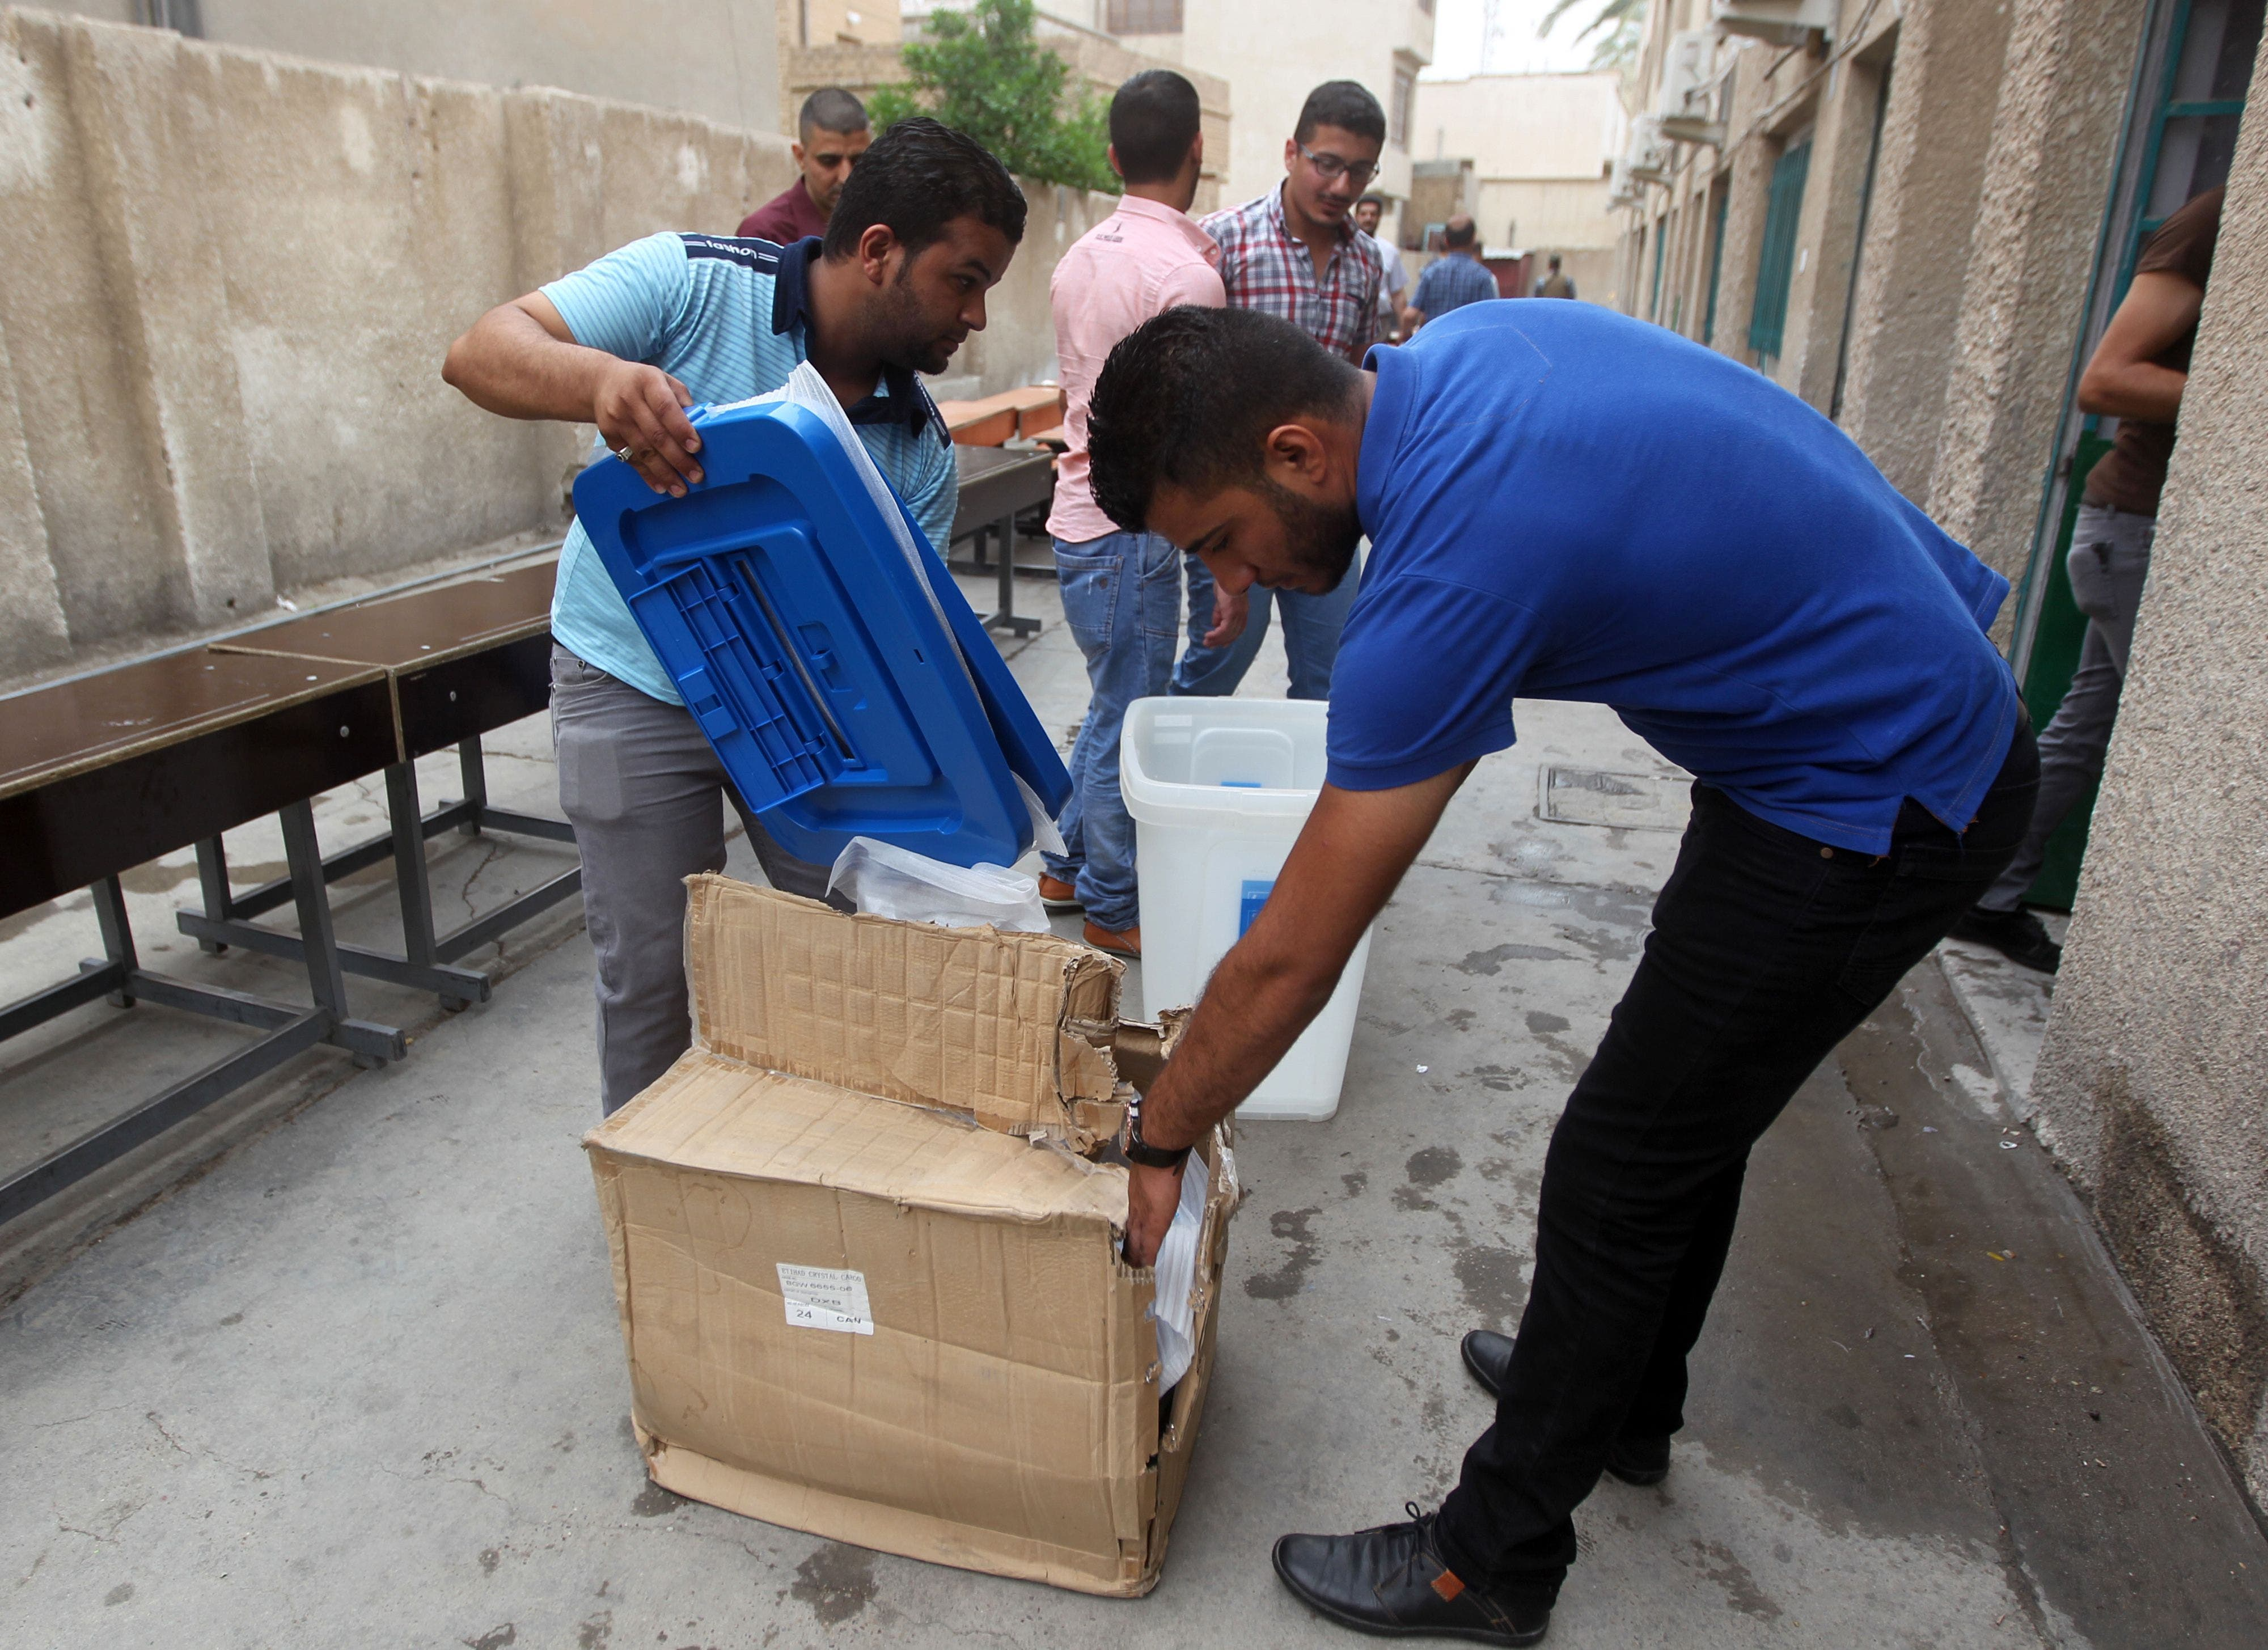 Employees distribute election material during vote preparations at a polling station on April 27, 2014 in the capital Baghdad ahead of the upcoming parliamentary elections in Iraq. (AFP)